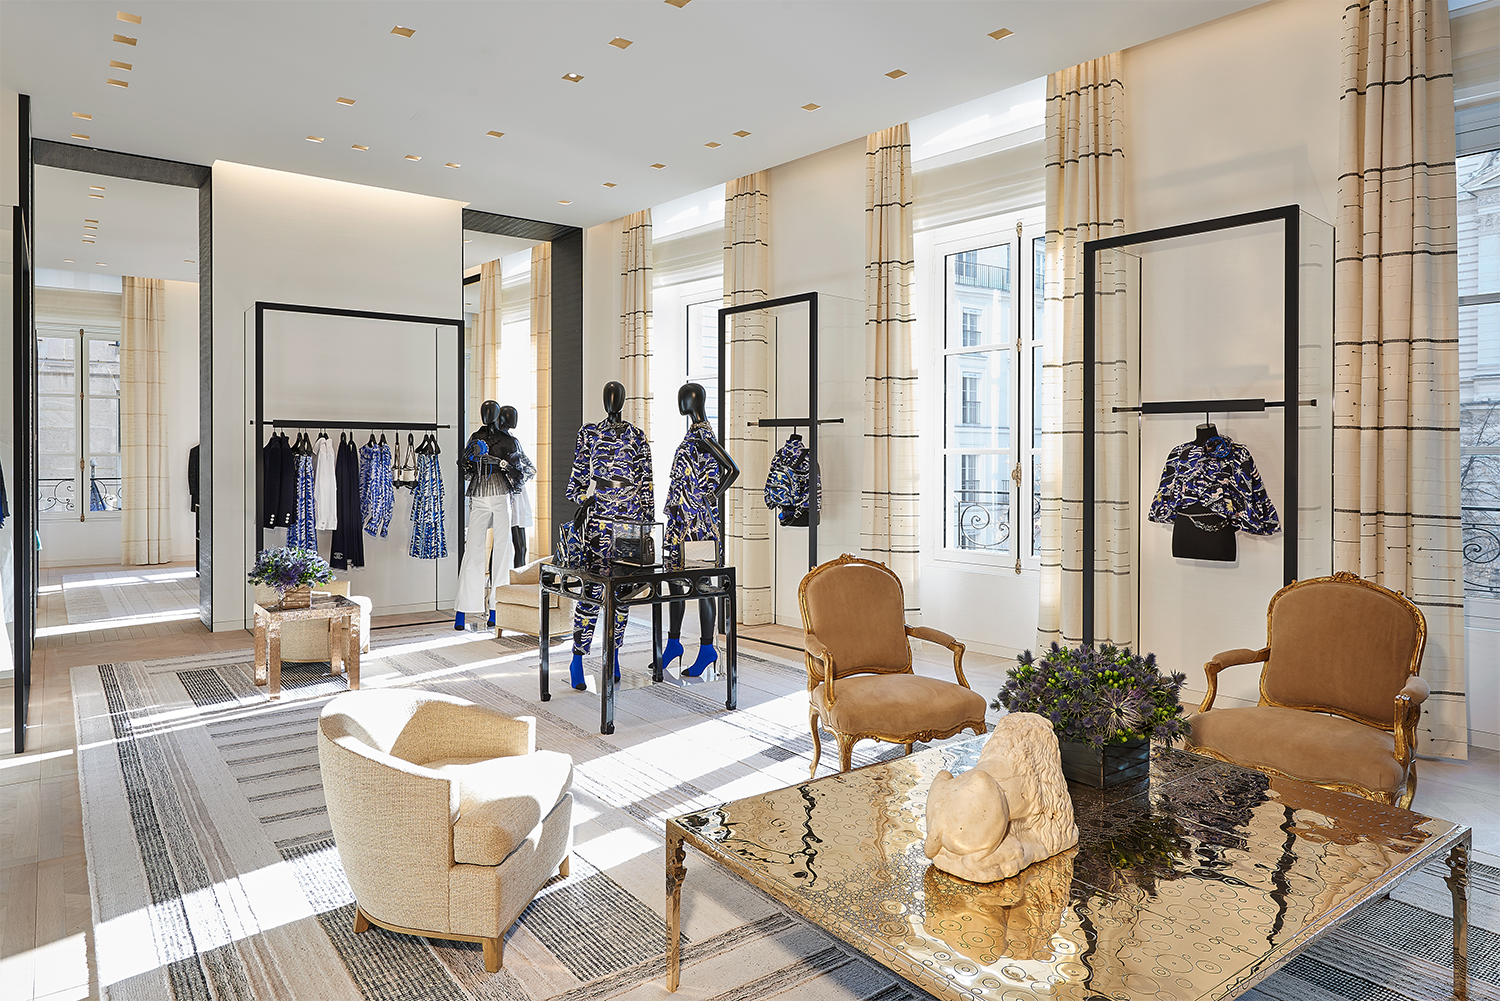 CHANEL new flagship store in Paris